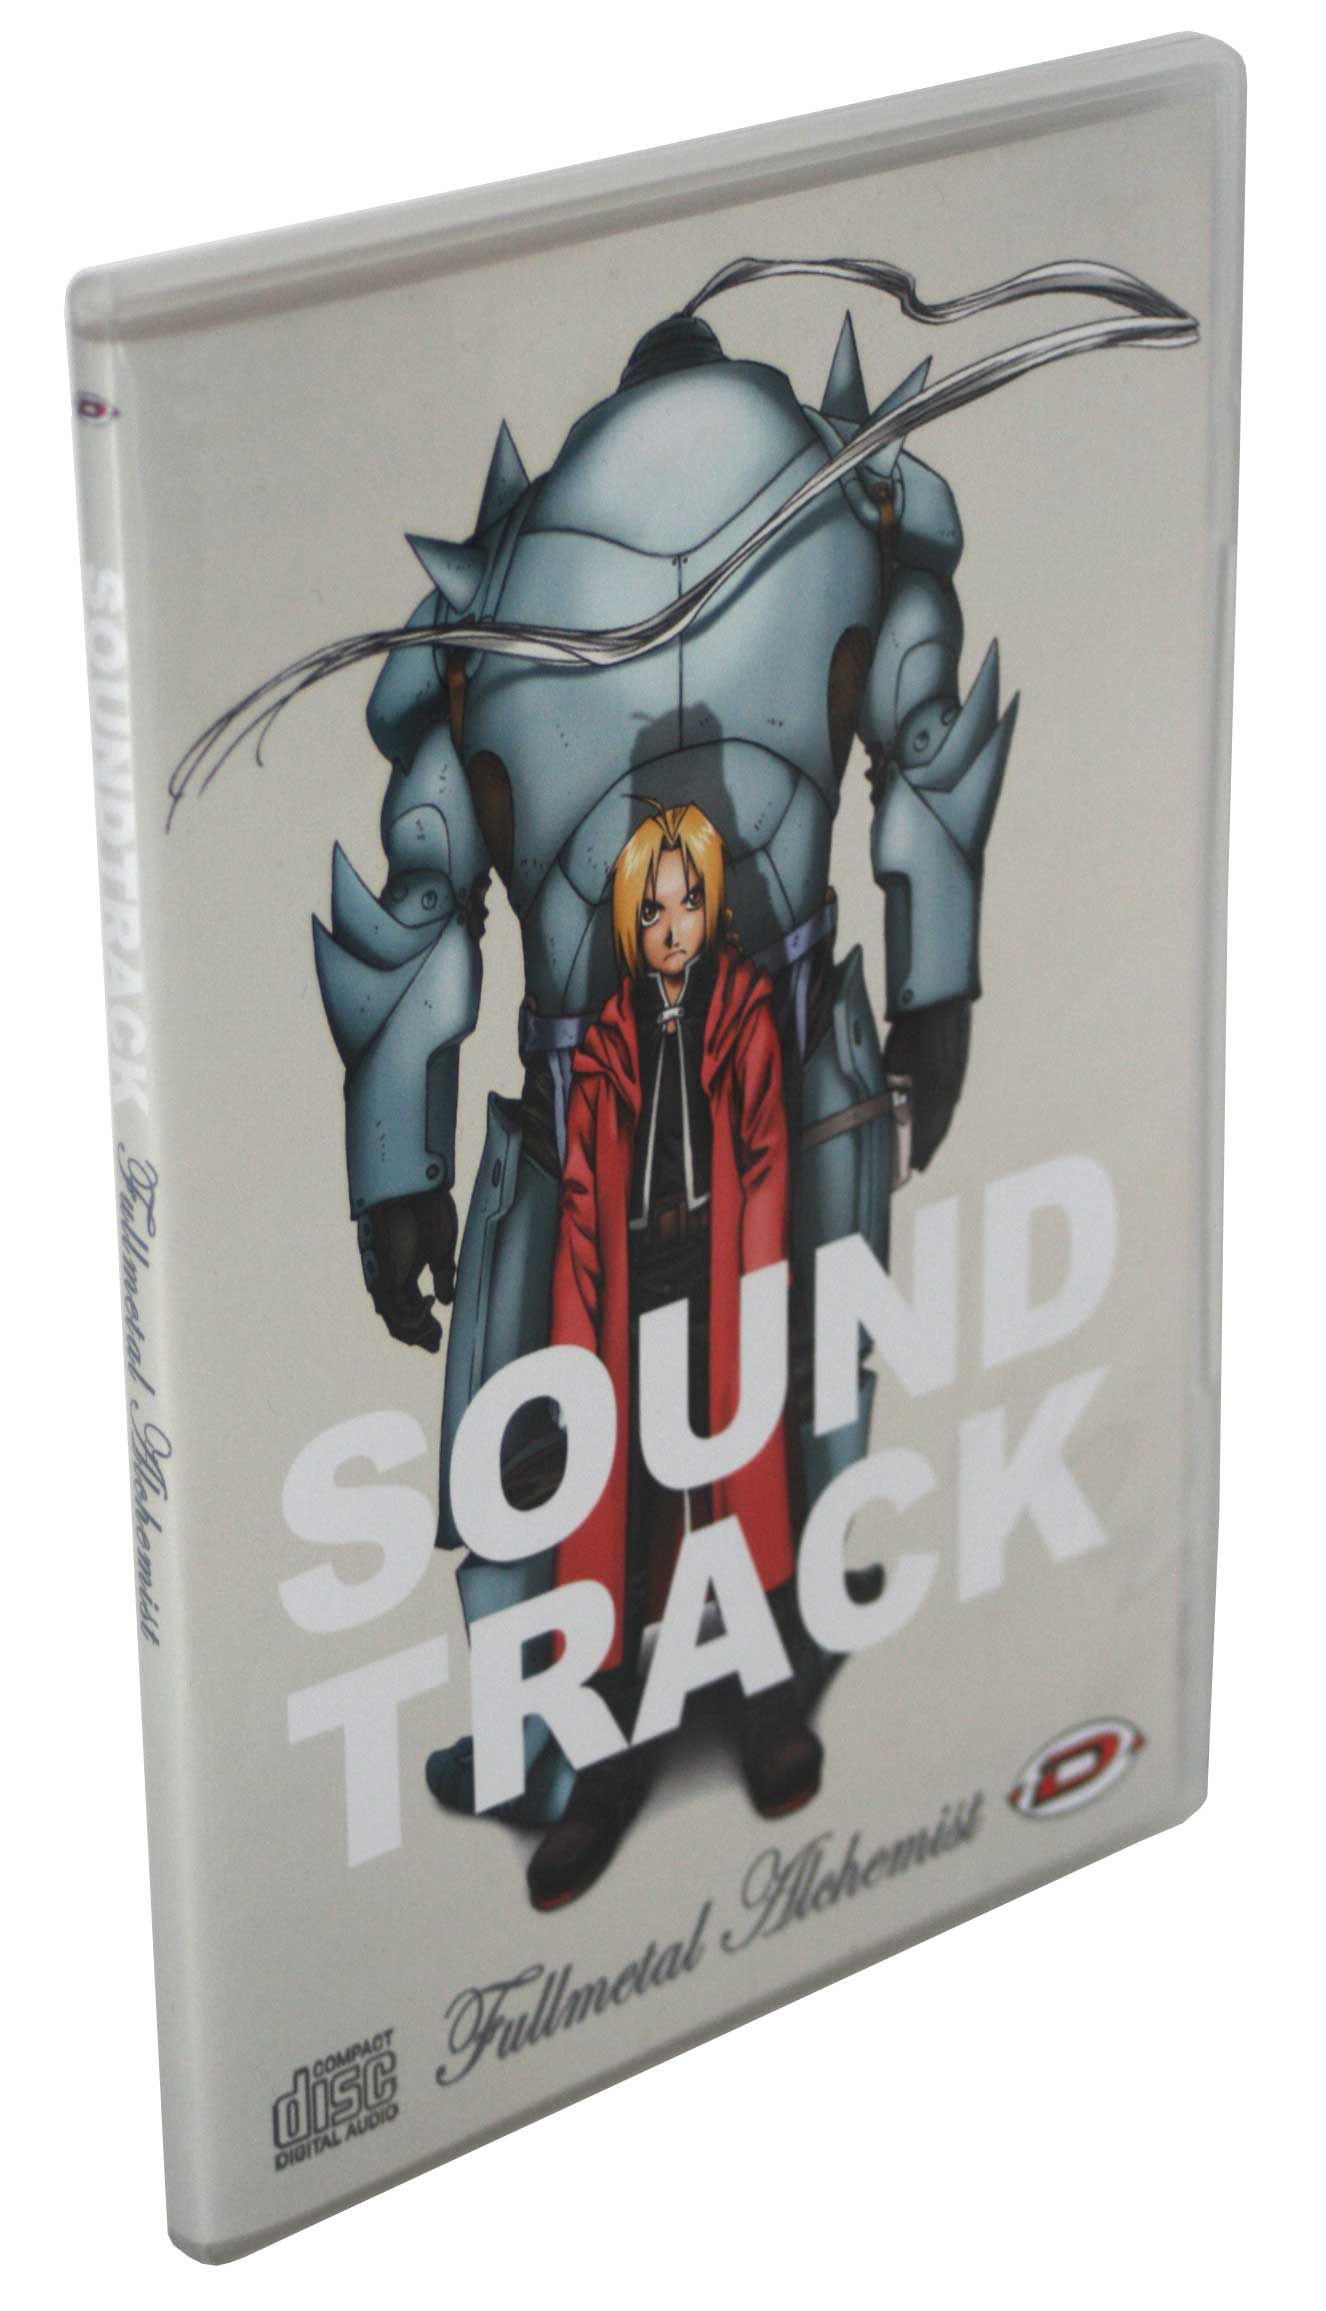 Fullmetal Alchemist OST (Dybex - 2008)